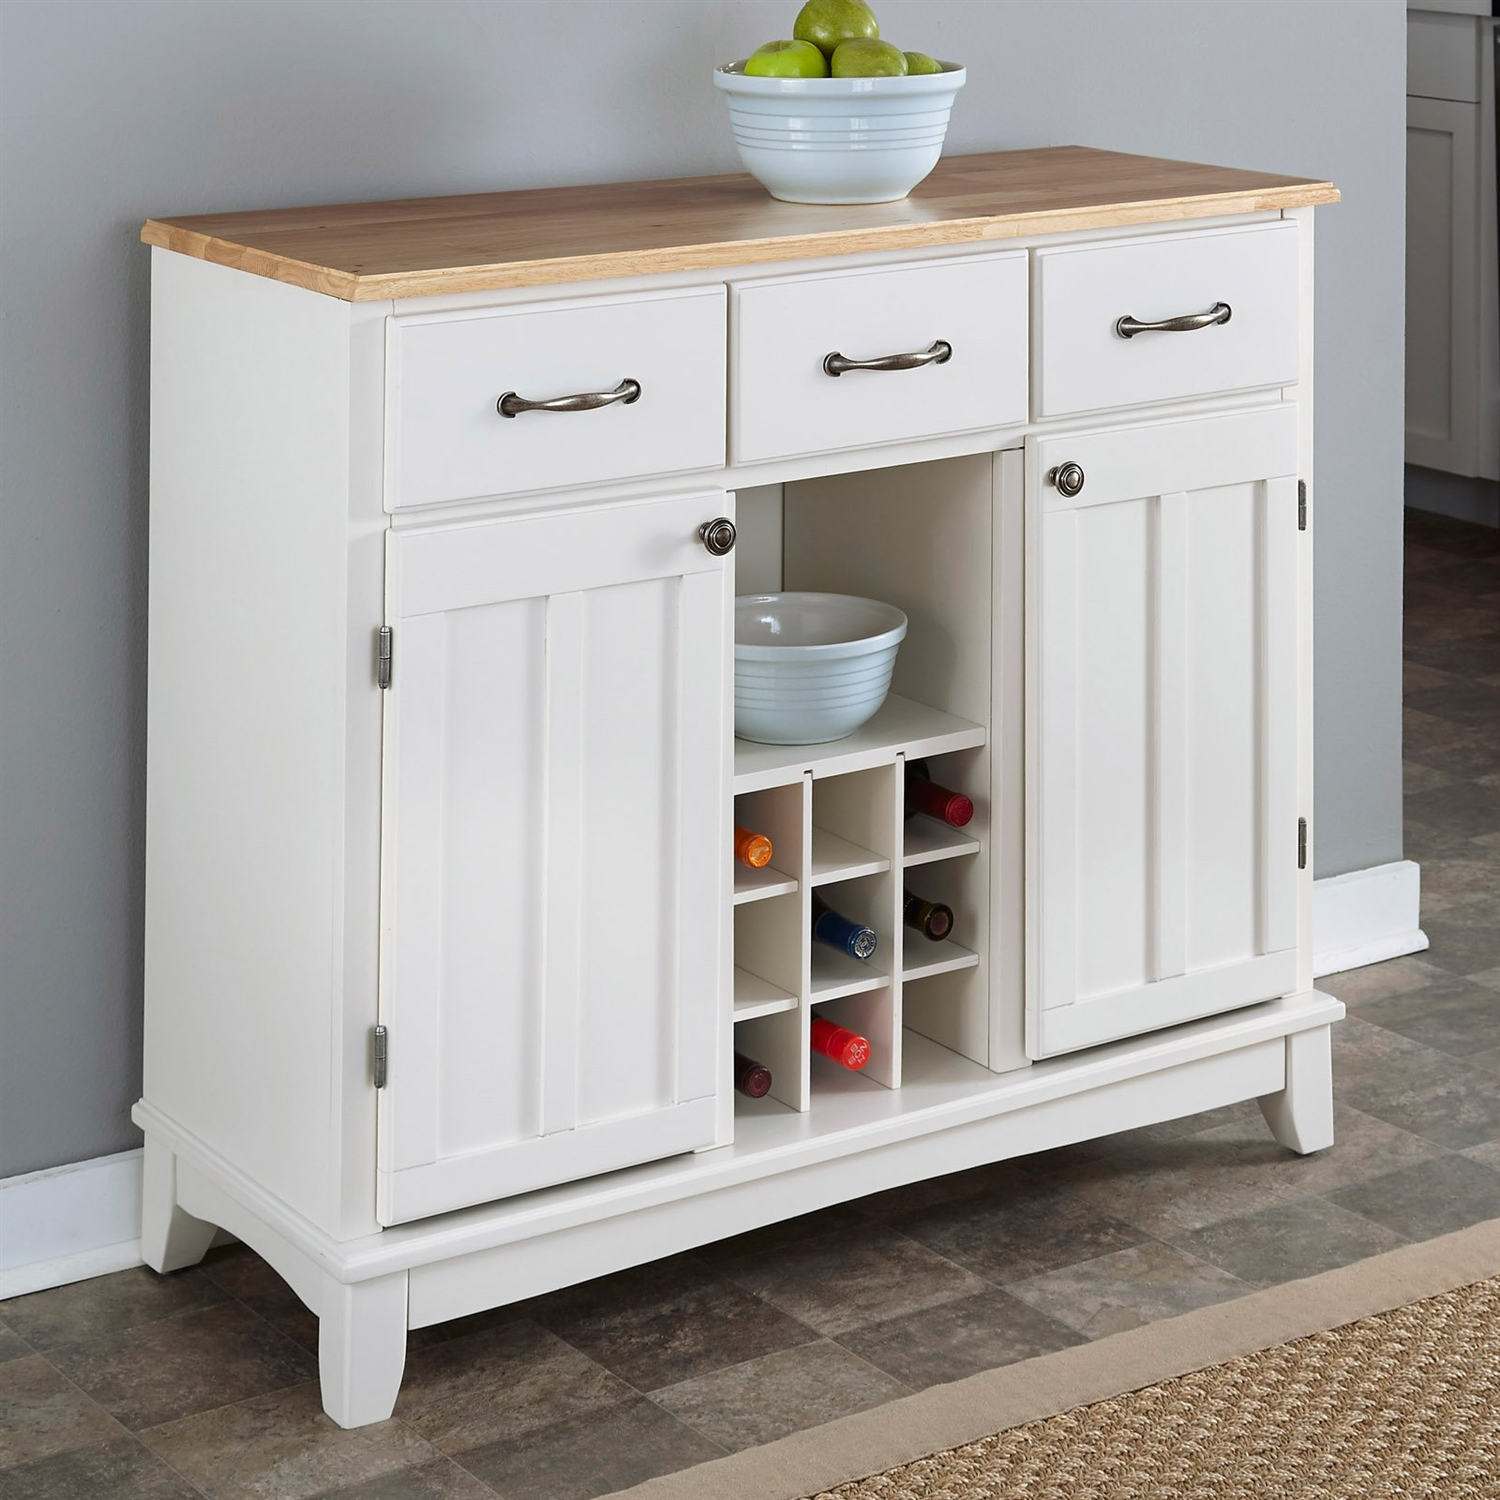 wine rack kitchen island Natural Wood Top Kitchen Island Sideboard Cabinet Wine Rack In White